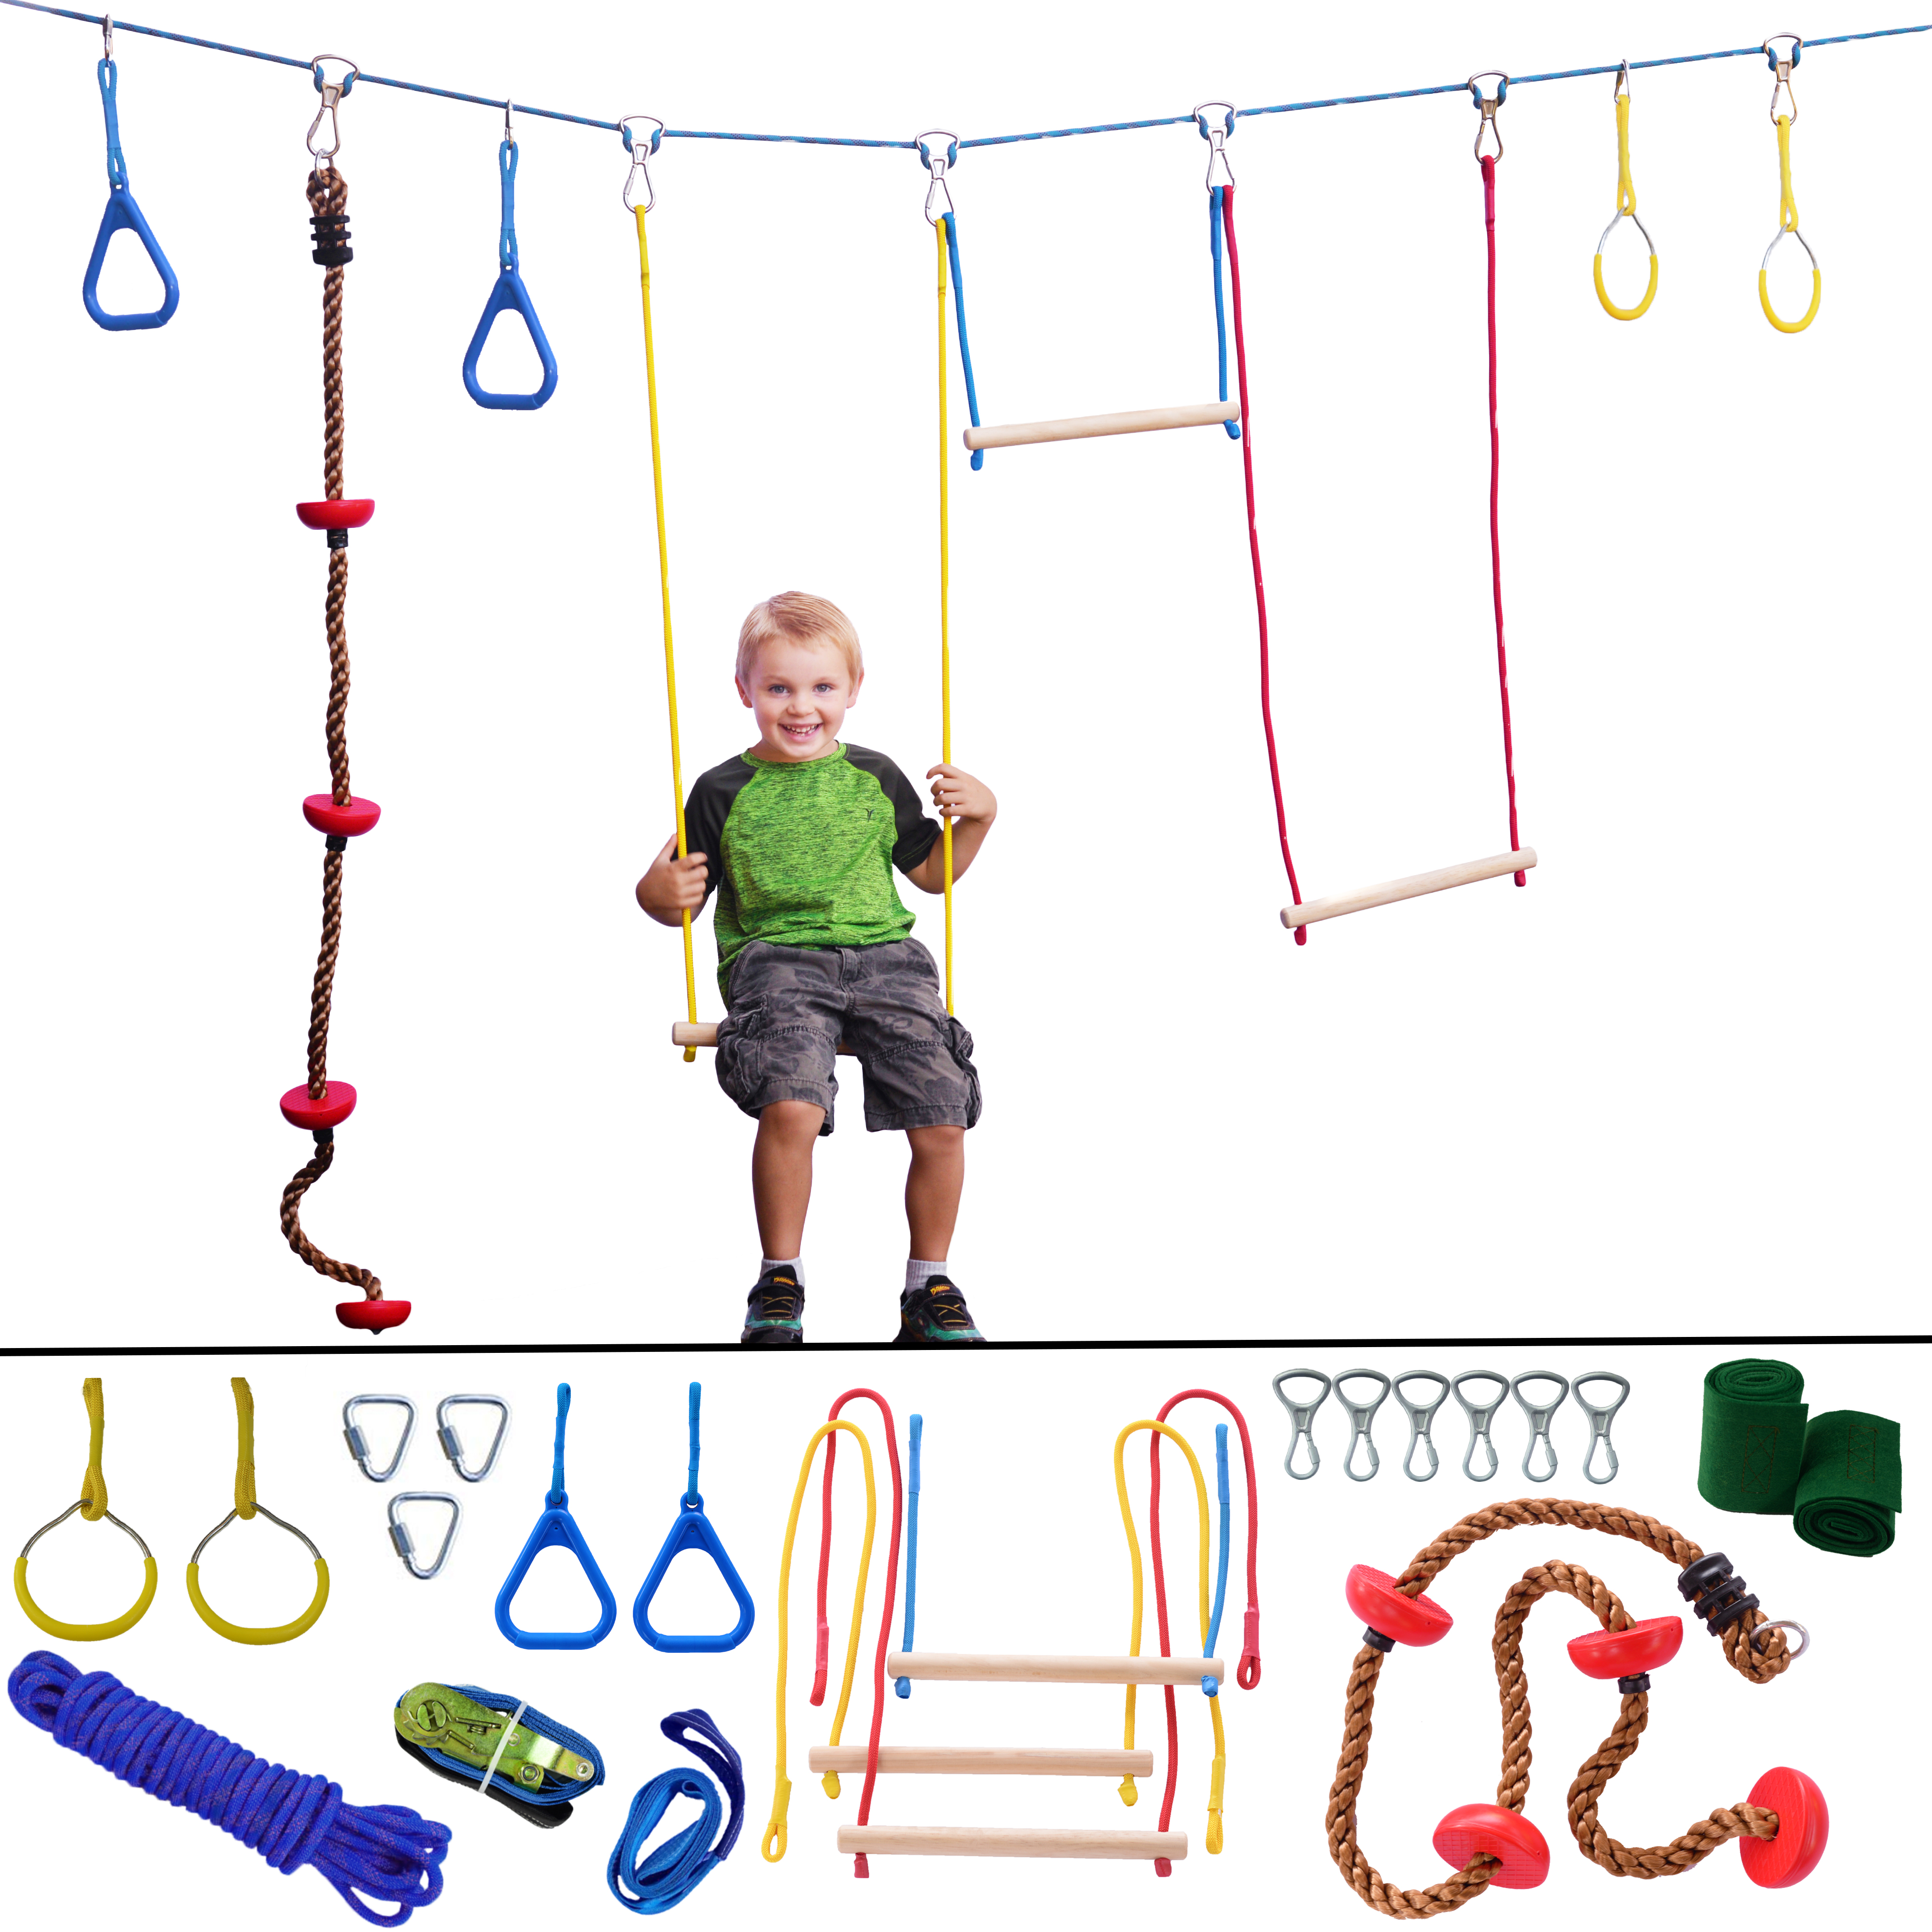 Ninja Hanging Obstacle Course